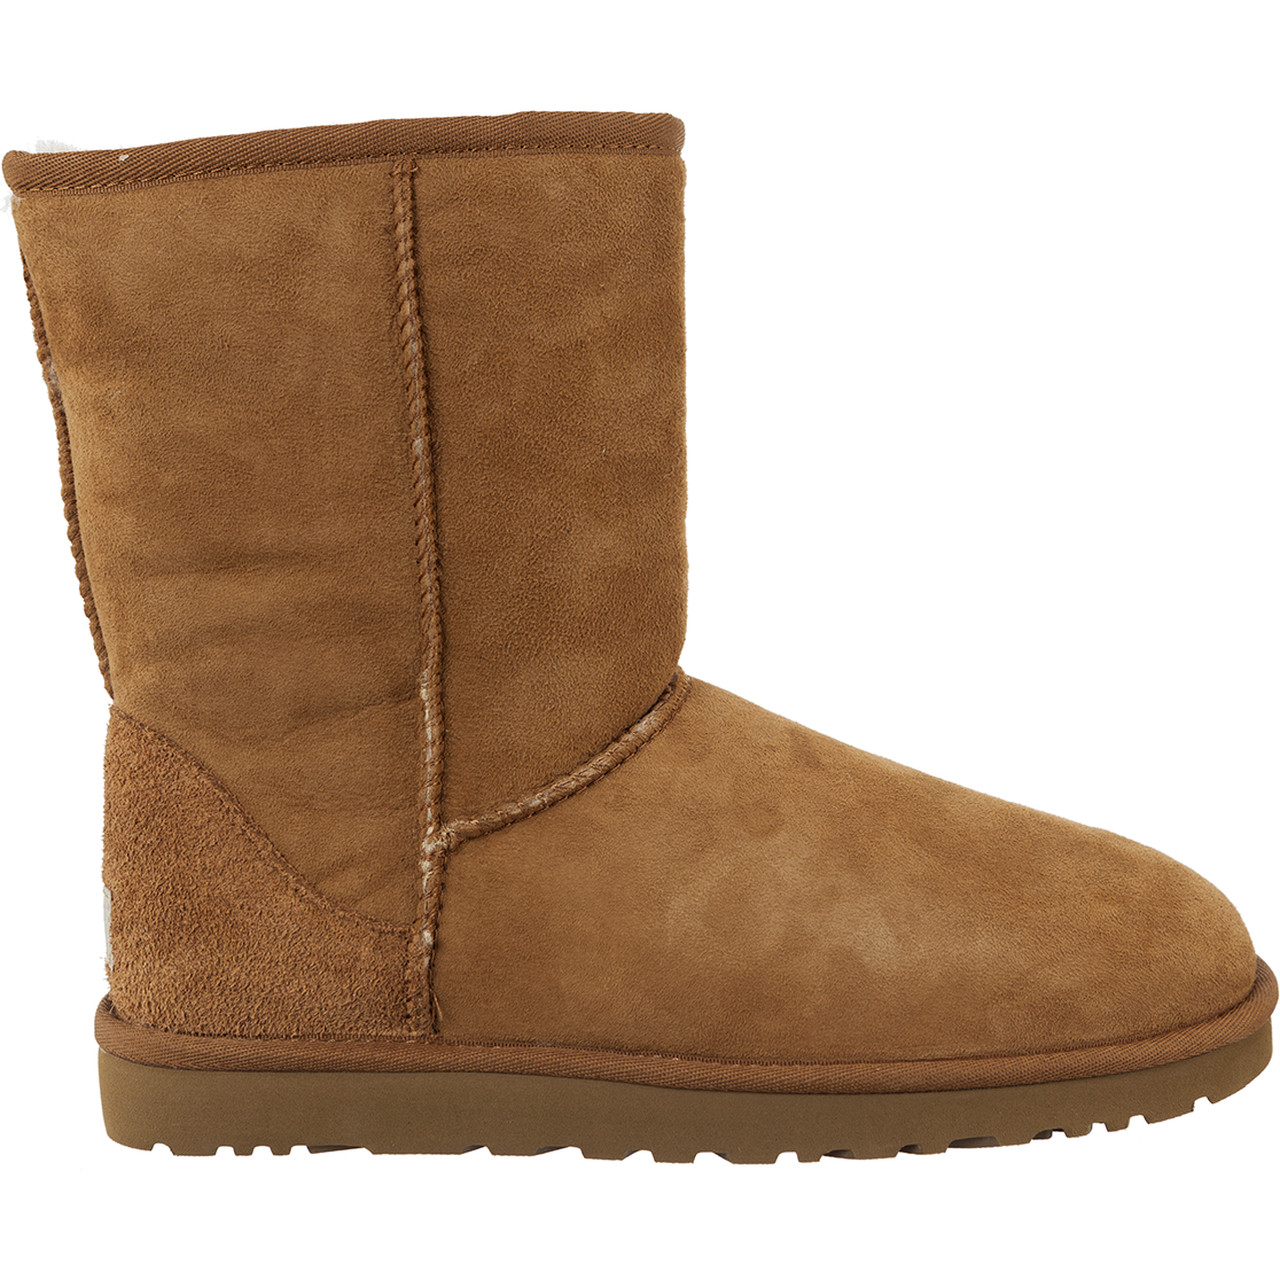 buy real uggs online cheap